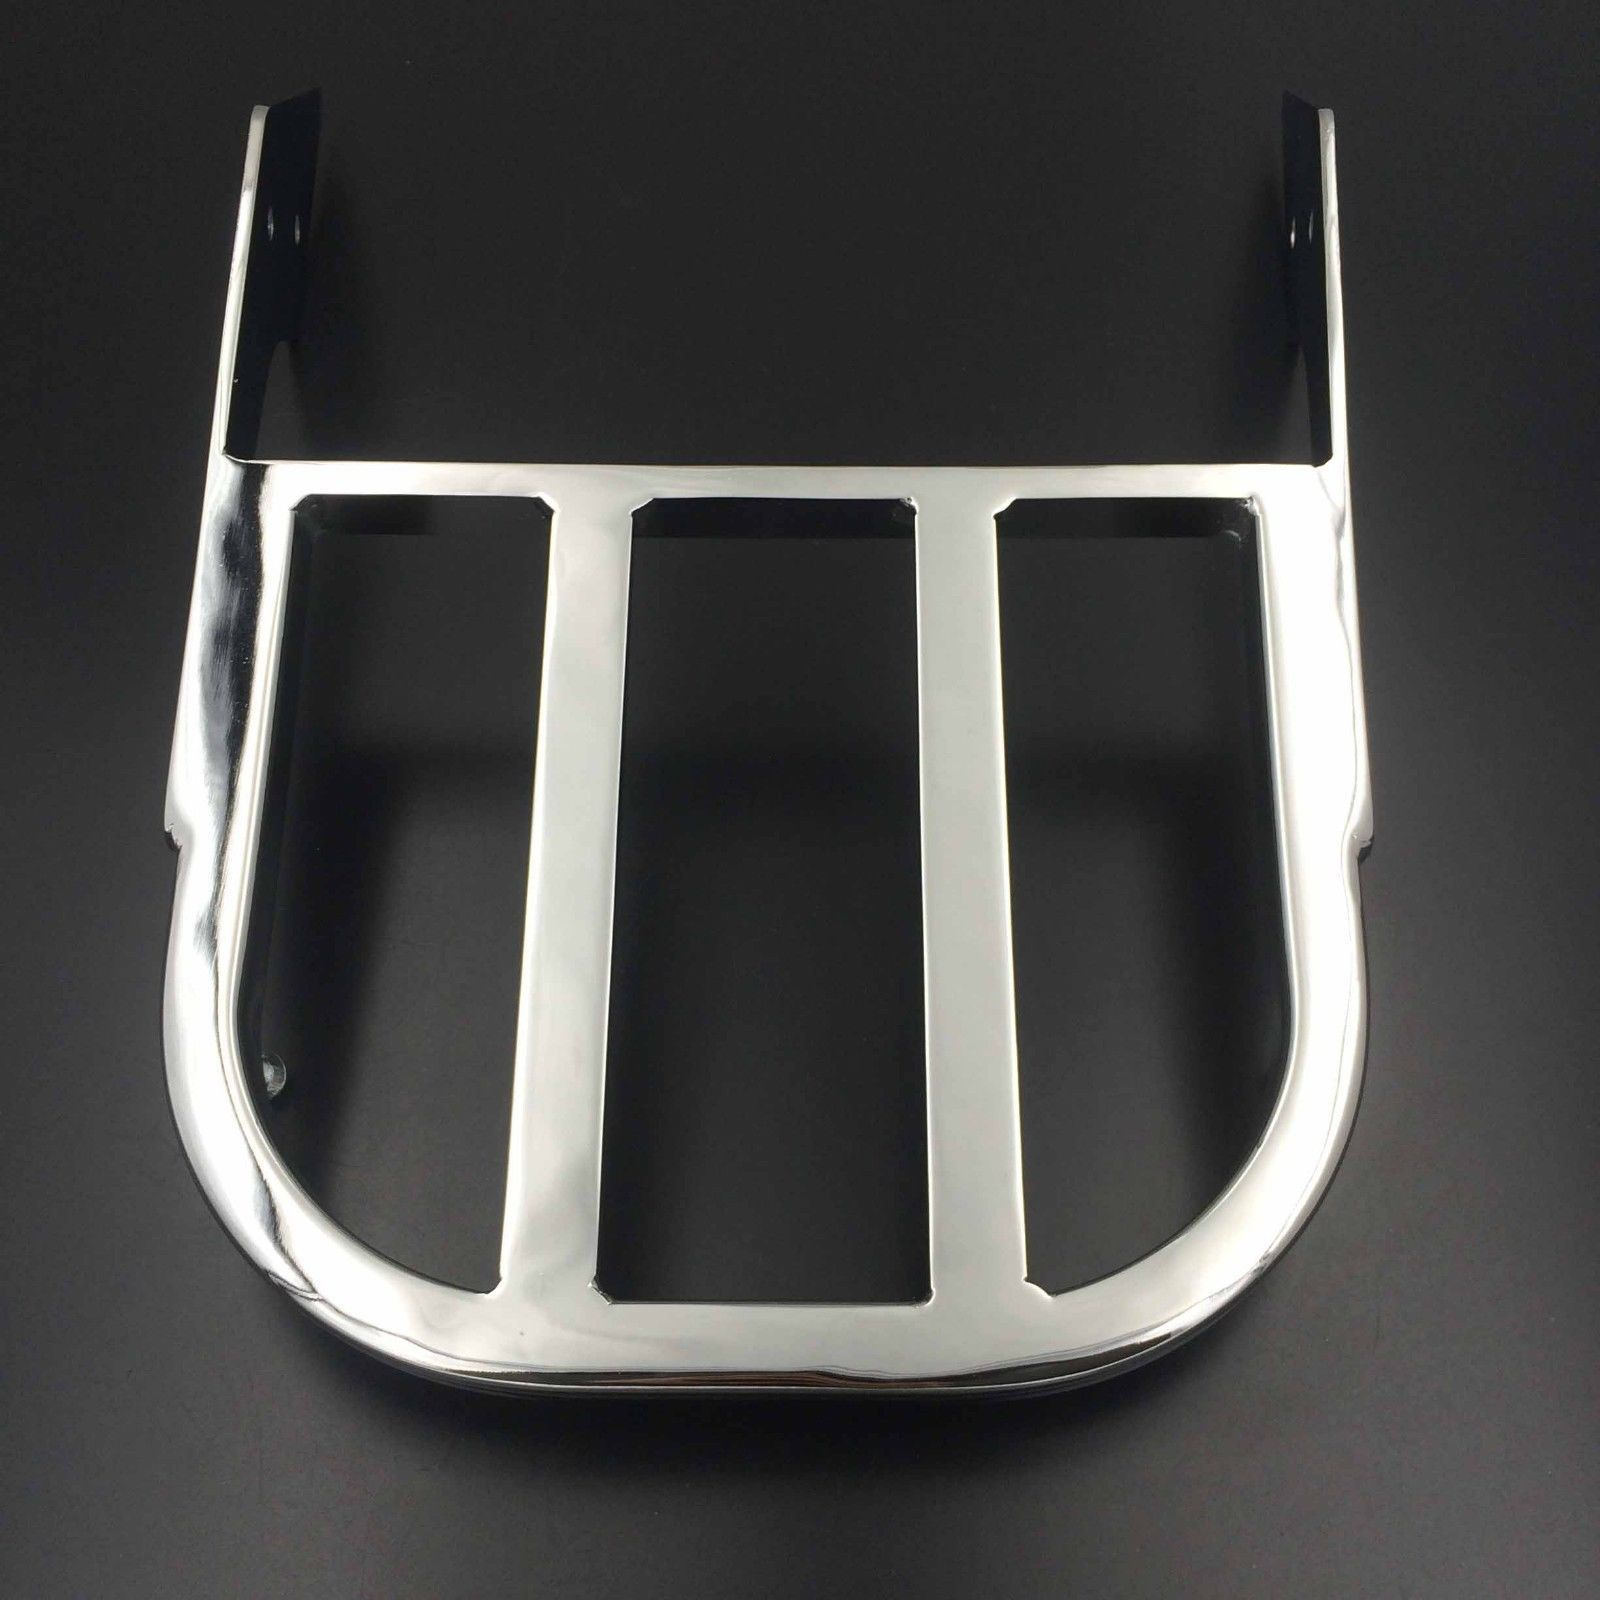 Chrome Sissy Bar Luggage Rack For Suzuki Marauder VZ800 Boulevard C50 C90 M50 Motorcycle for suzuki intruder 1400 1500 lc boulevard s83 c90 marauder 800 wing motorcycle foot pegs motorcycle part